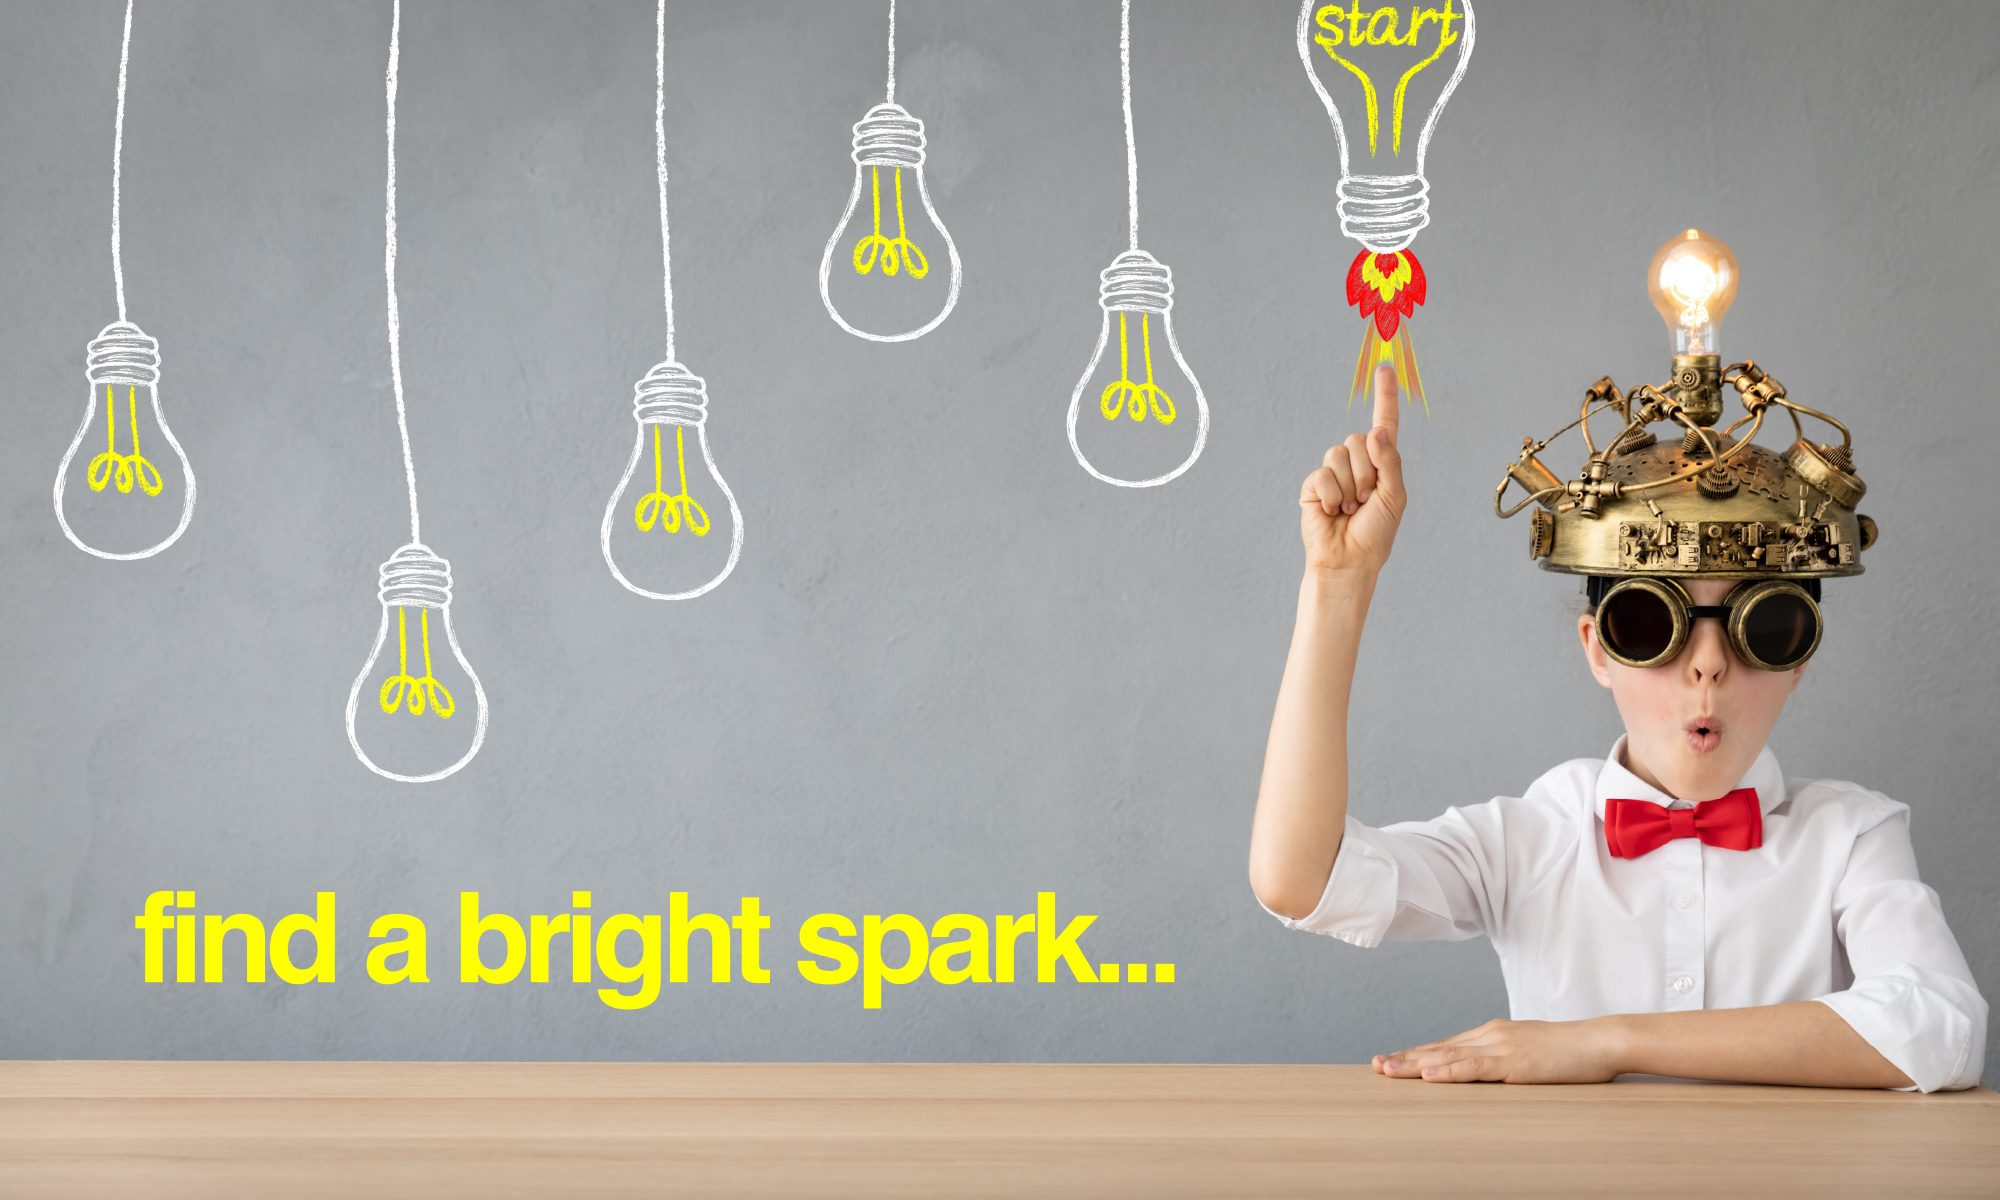 Looking for a bright spark